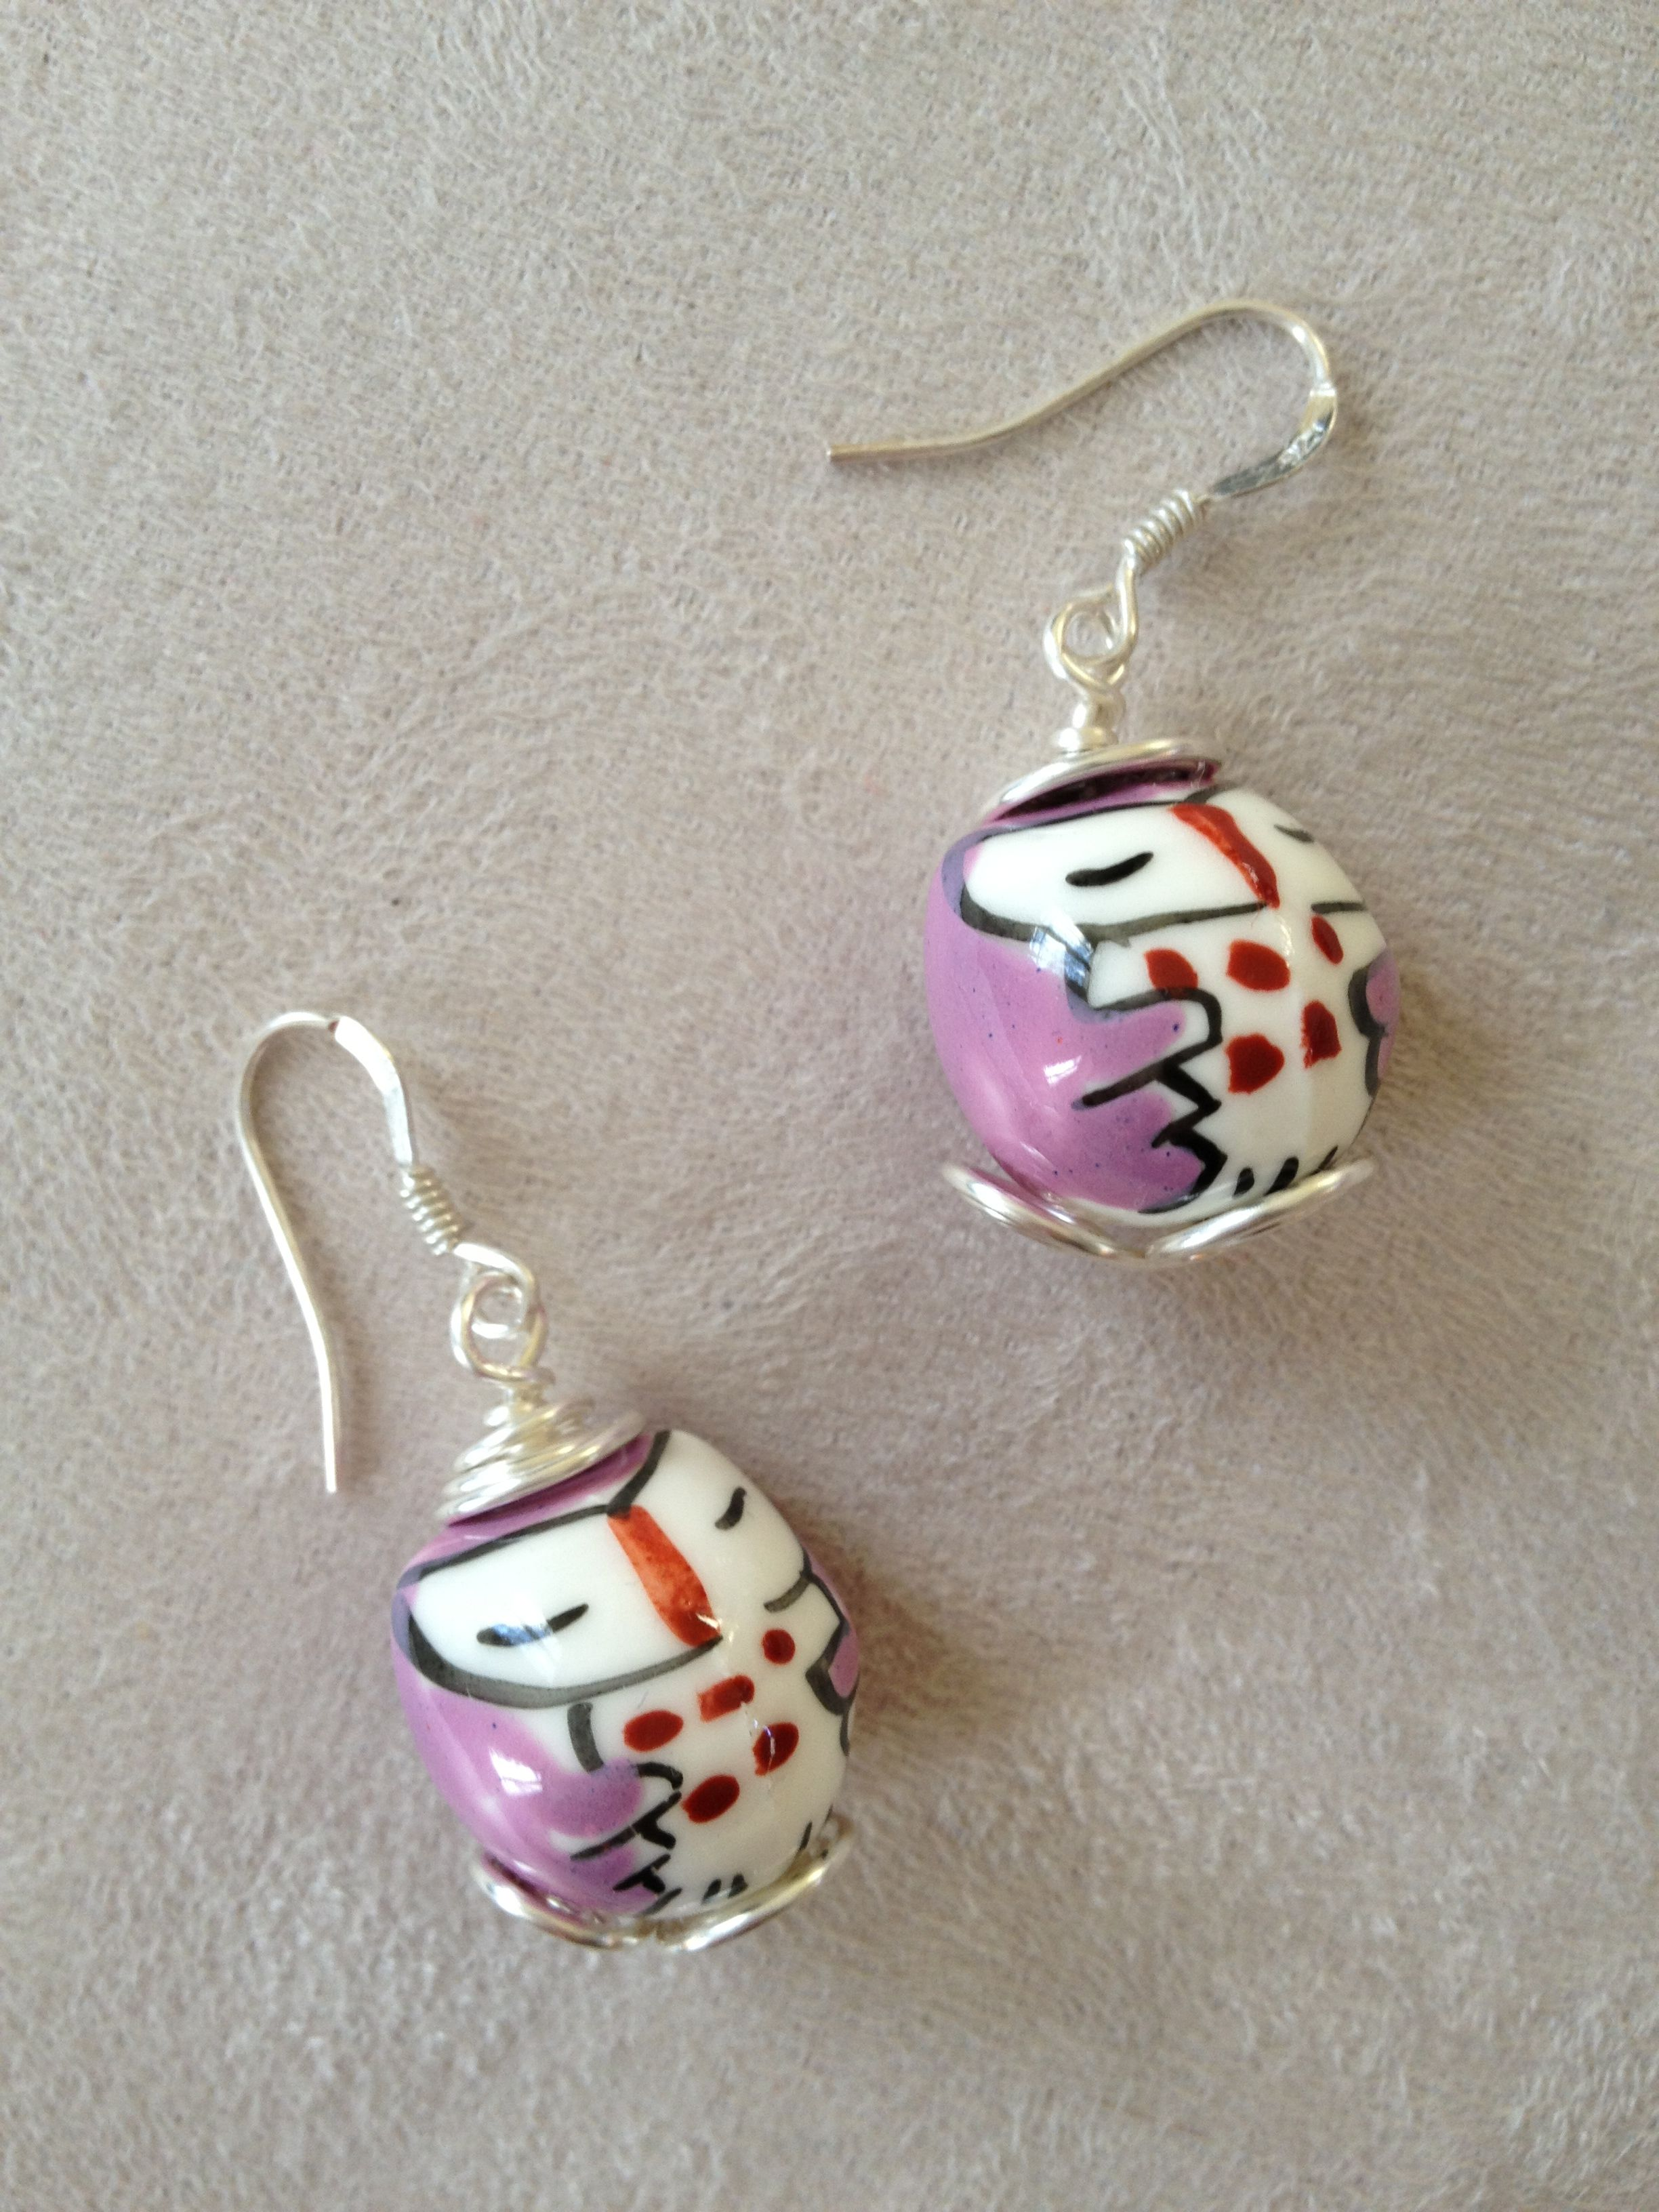 Boucles chouettes roses! Wire wrapping